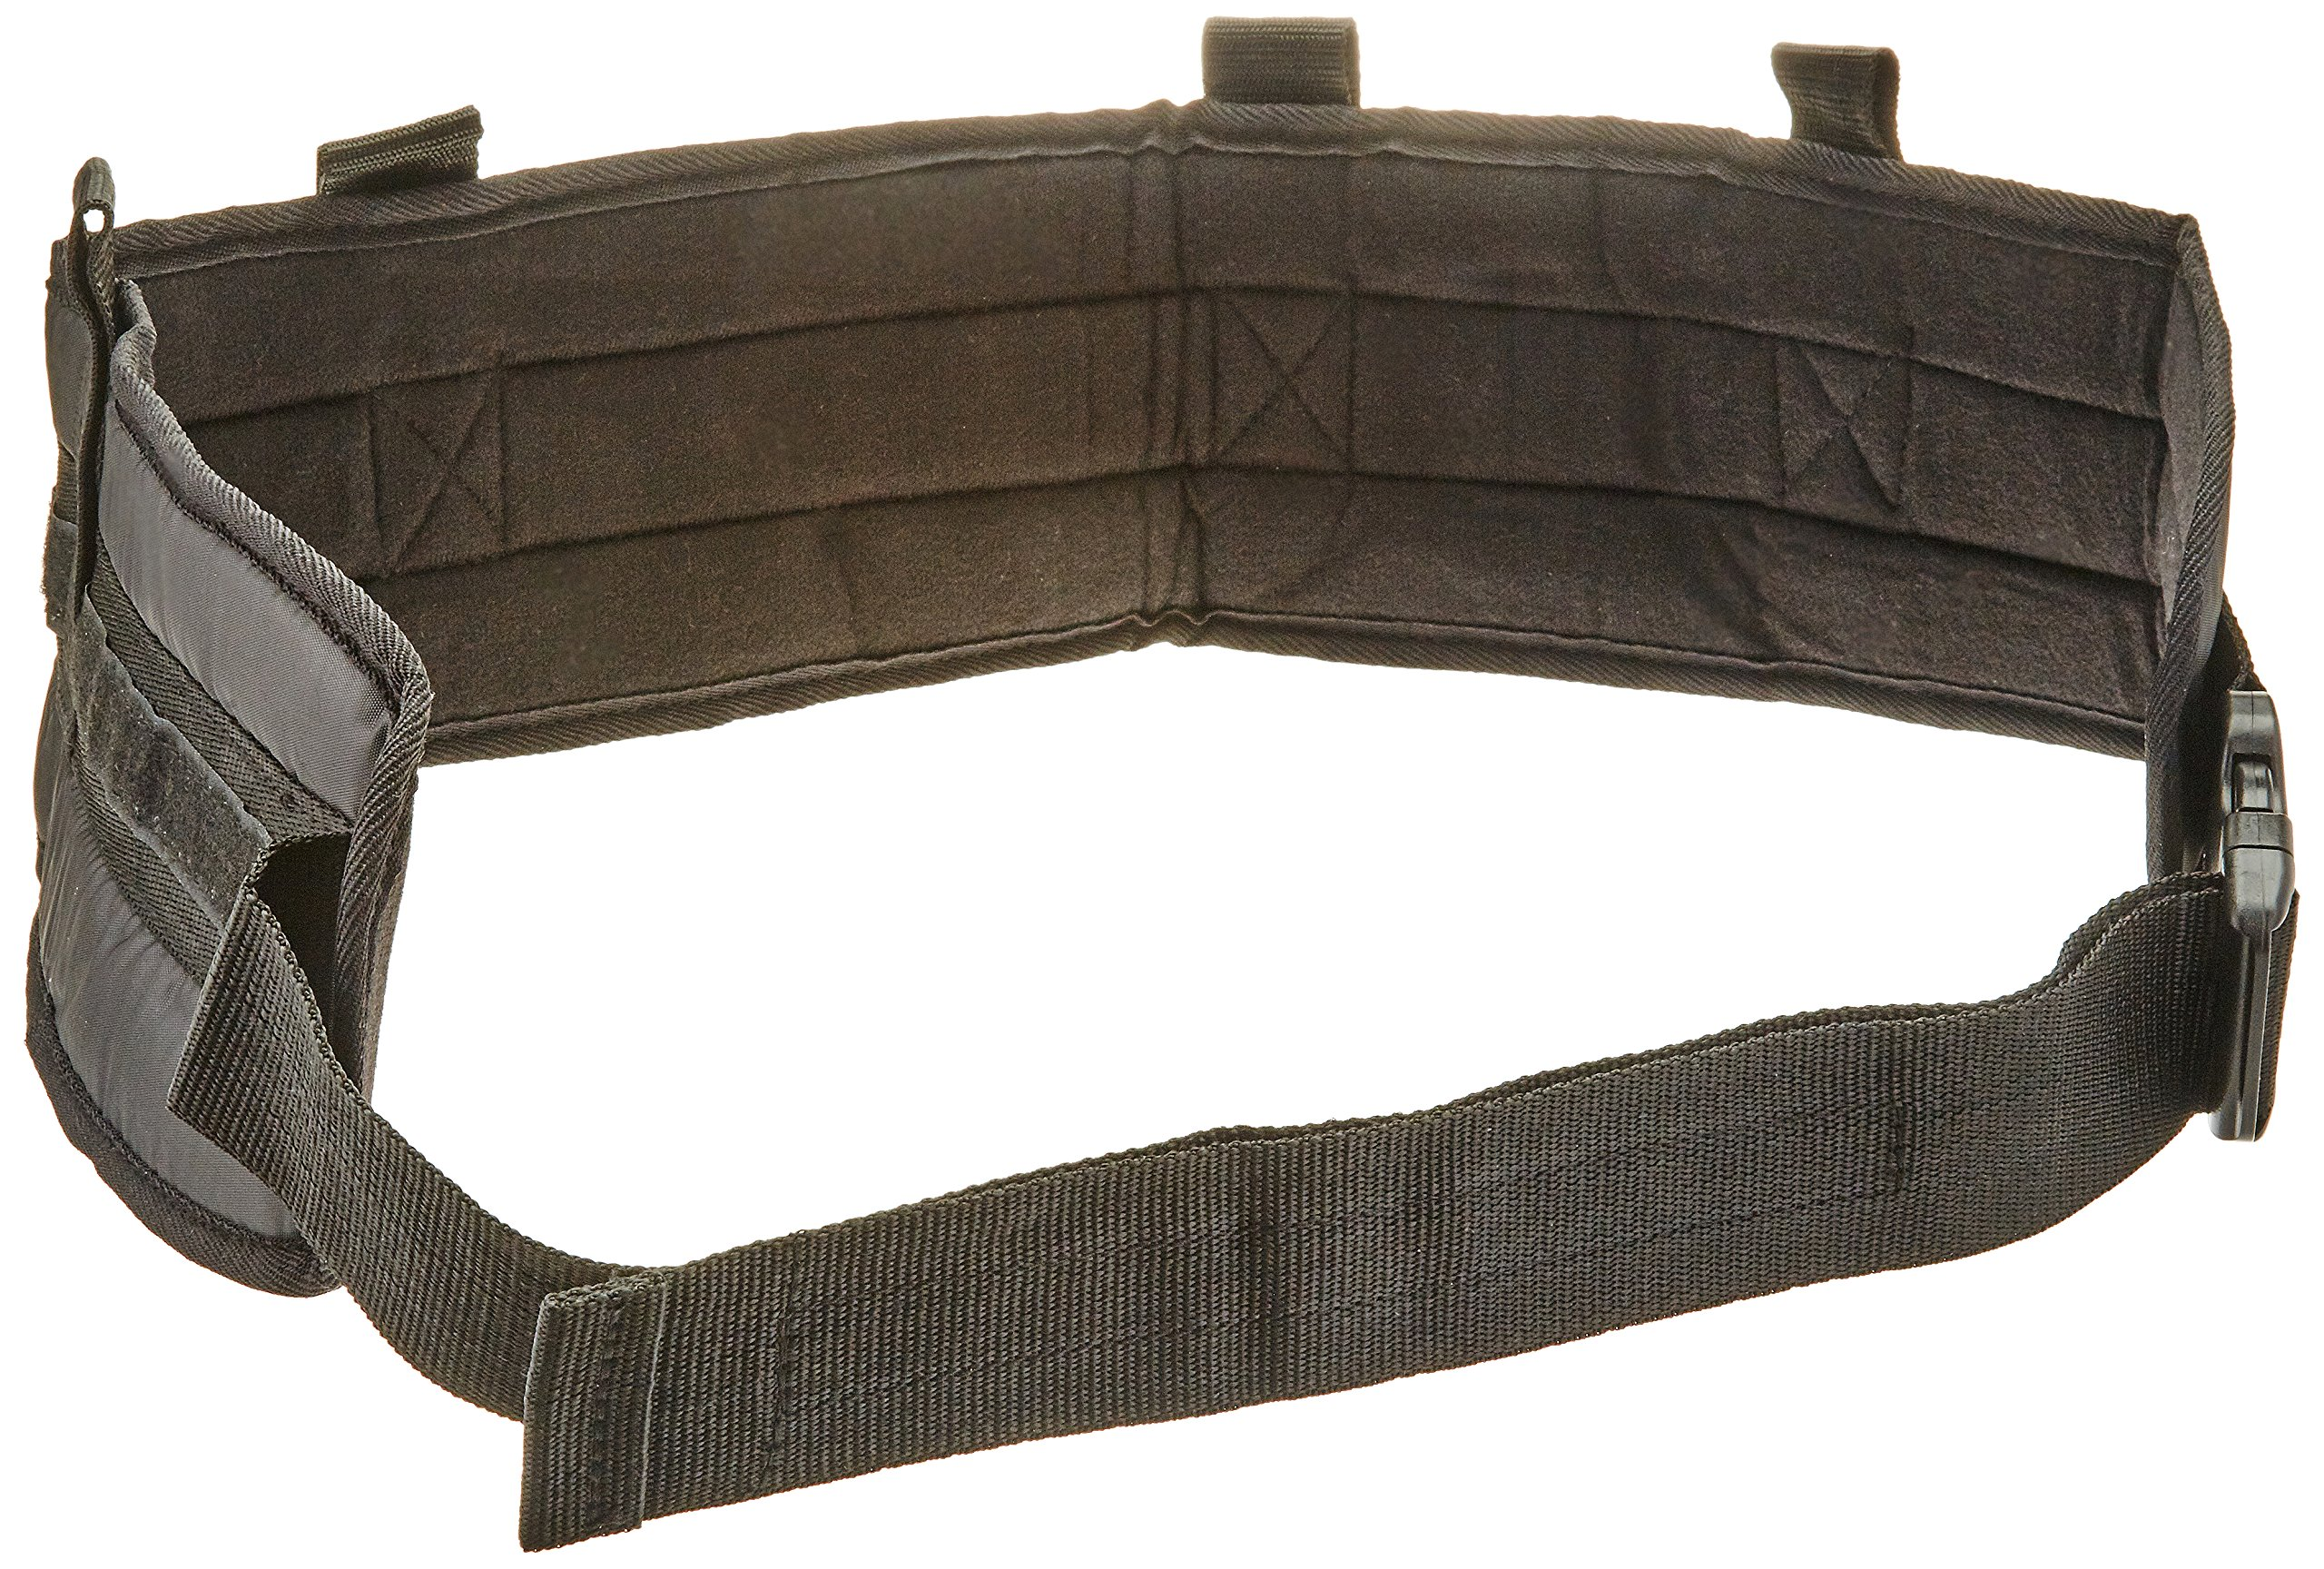 Sammons Preston Padded Gait Belt with Handles, 5.5'' Wide Transfer Belt with 4 Loops and Quick Release Buckle, Handled Limited Mobility Aid Belt for Patient Care, Black, Large Belt Fits 40''-64'' Waist